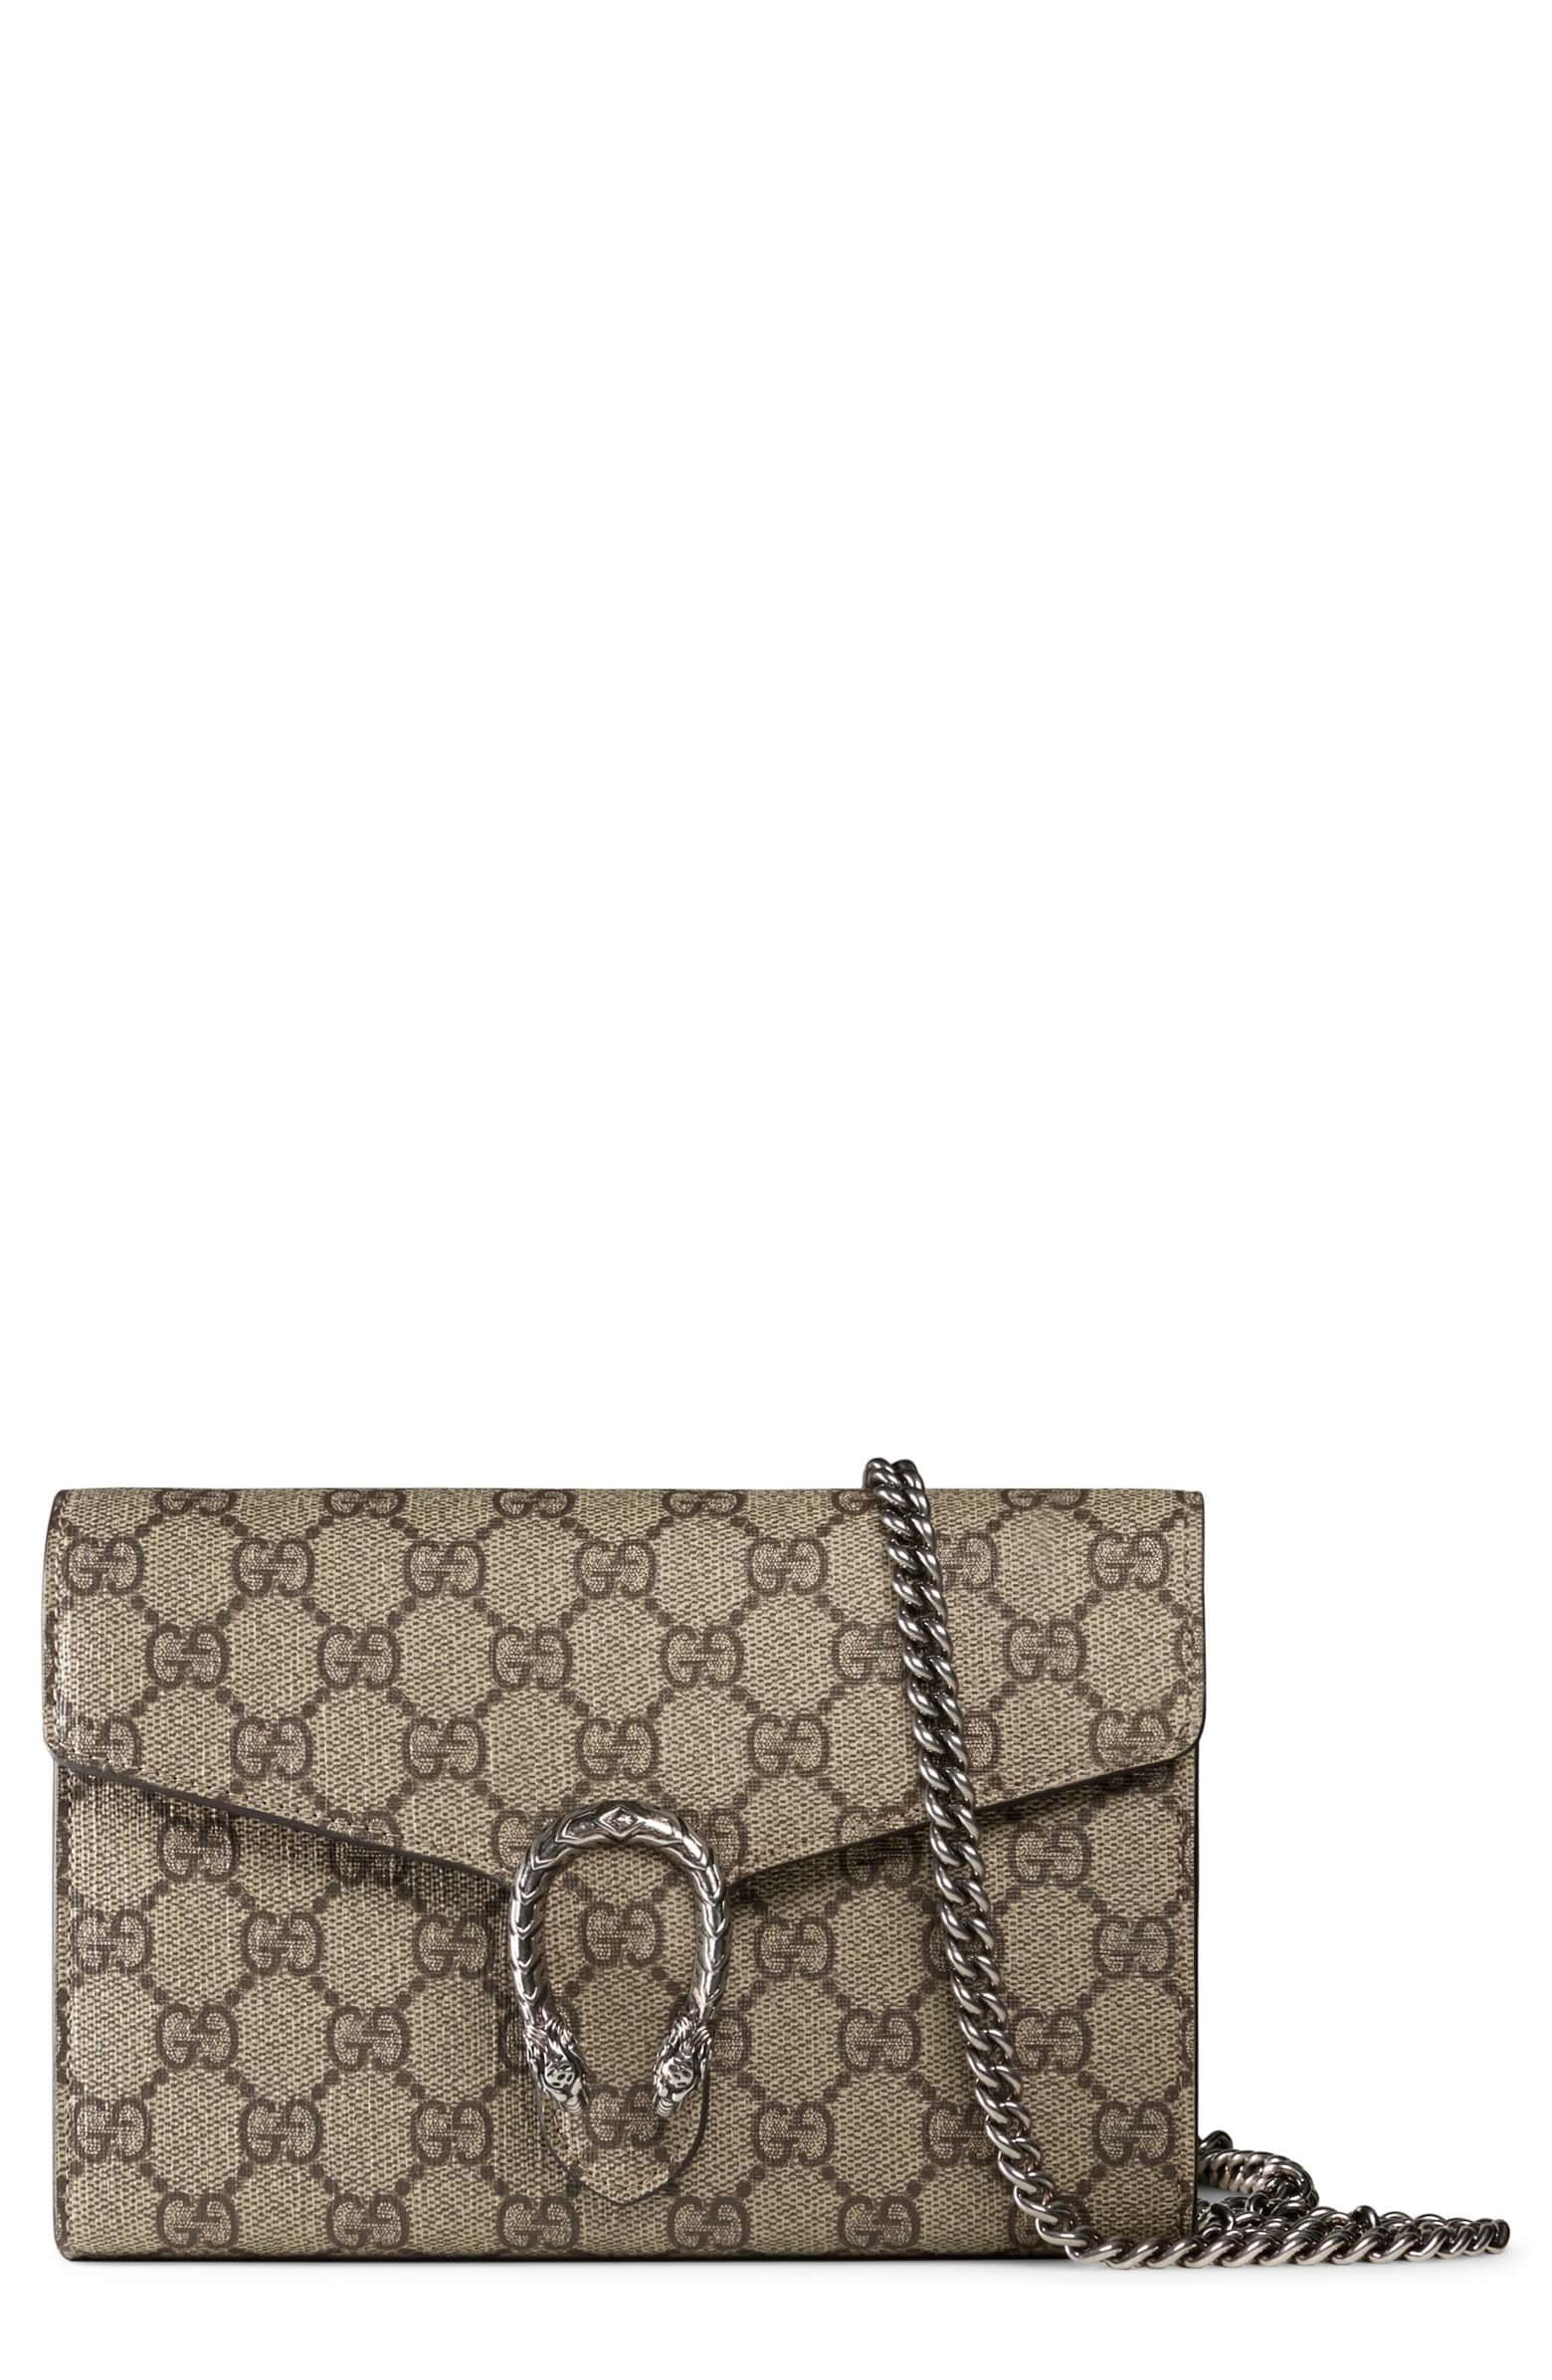 652132a73 Dionysus GG Supreme Canvas Wallet on a Chain, Main, color, BEIGE EBONY/TAUPE